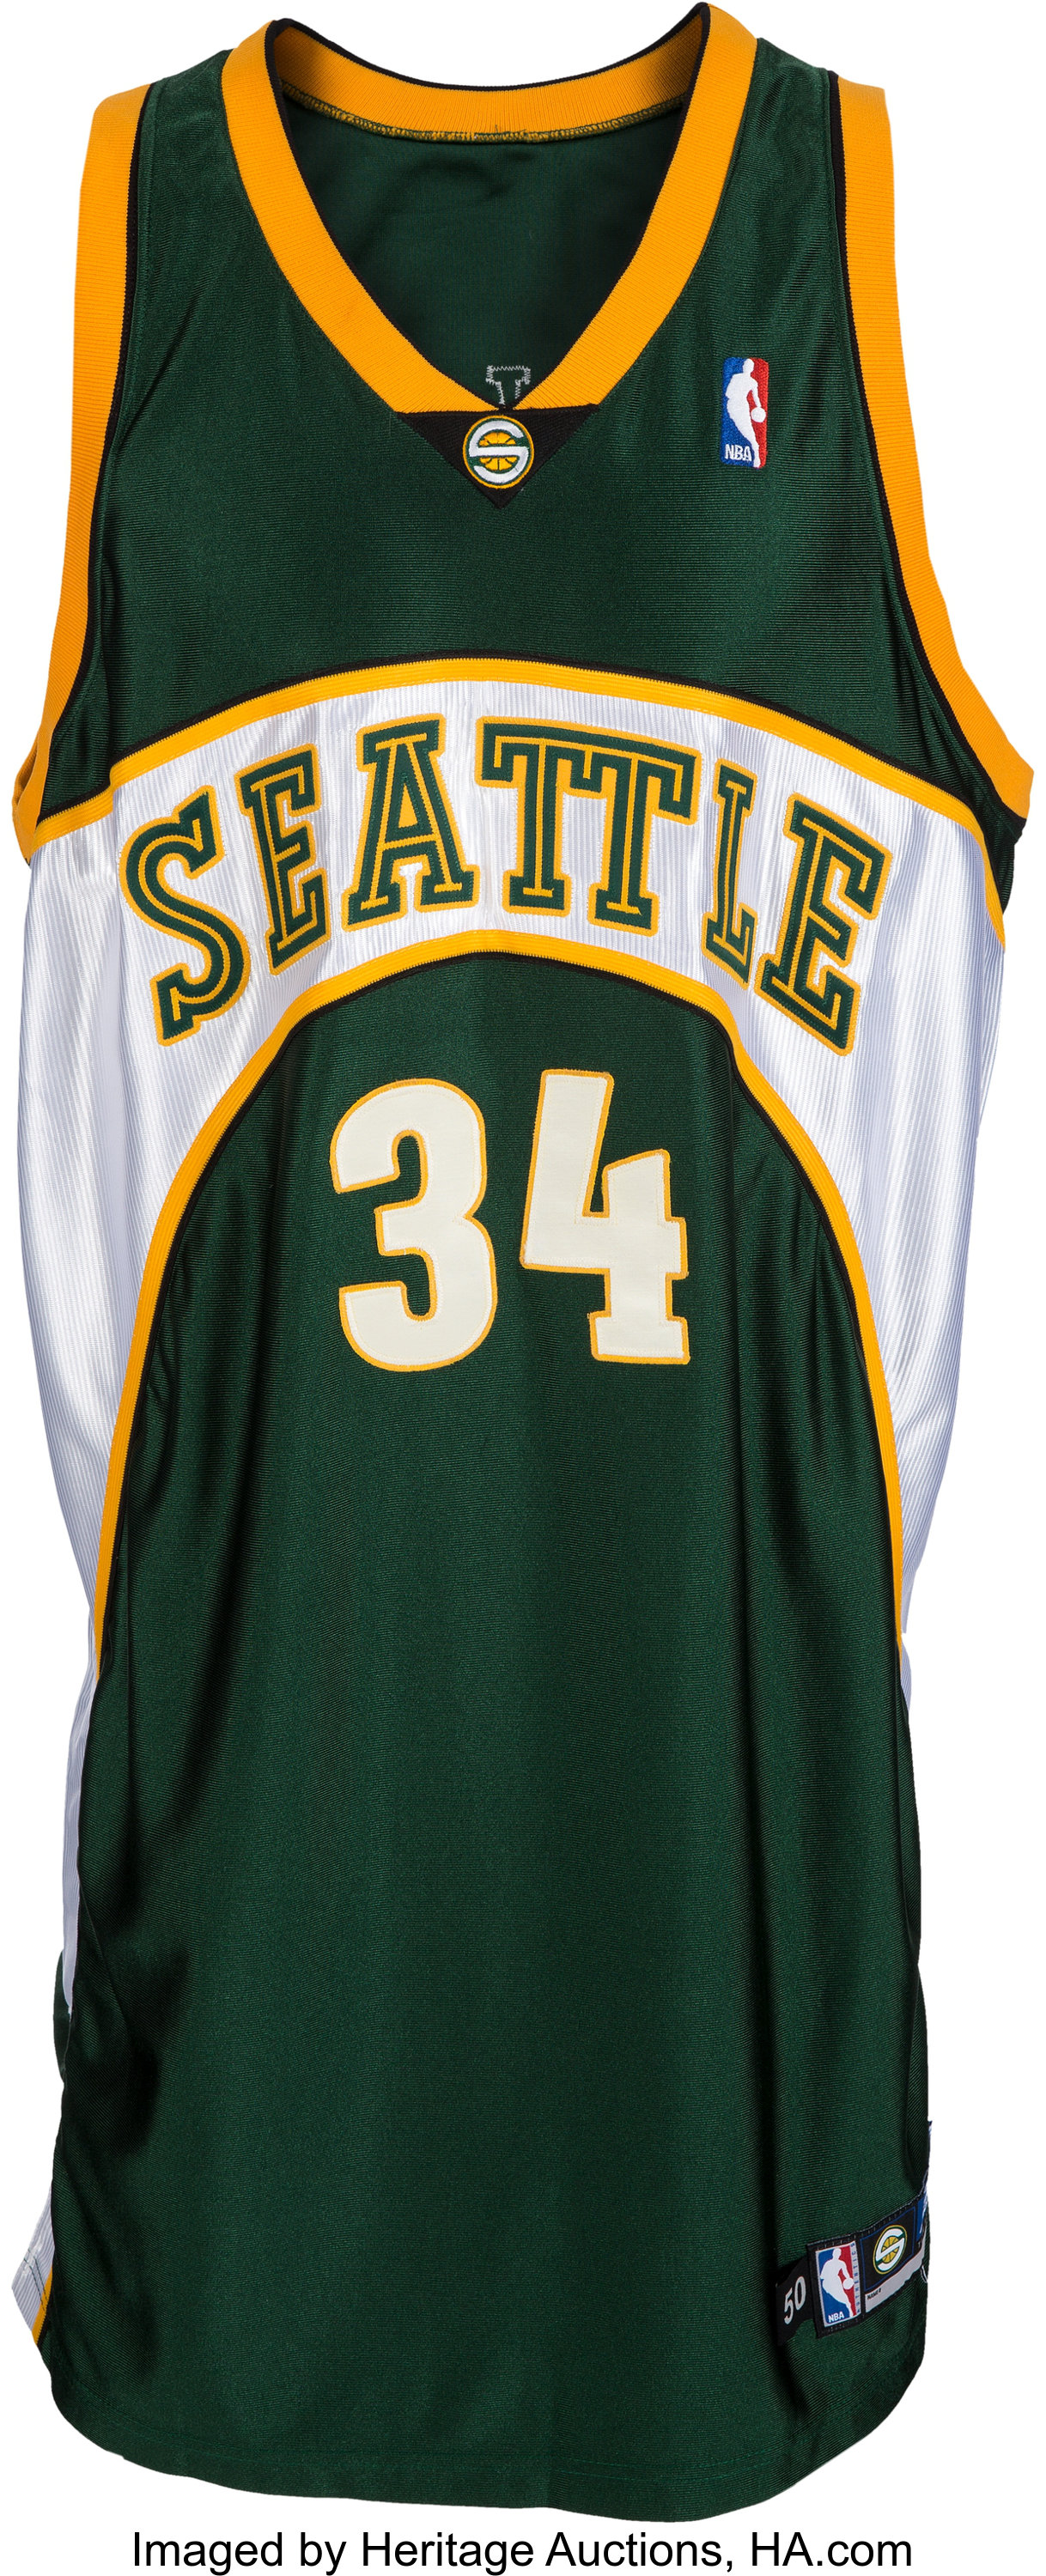 2004-05 Ray Allen Game Worn Seattle Supersonics Jersey.... | Lot ...